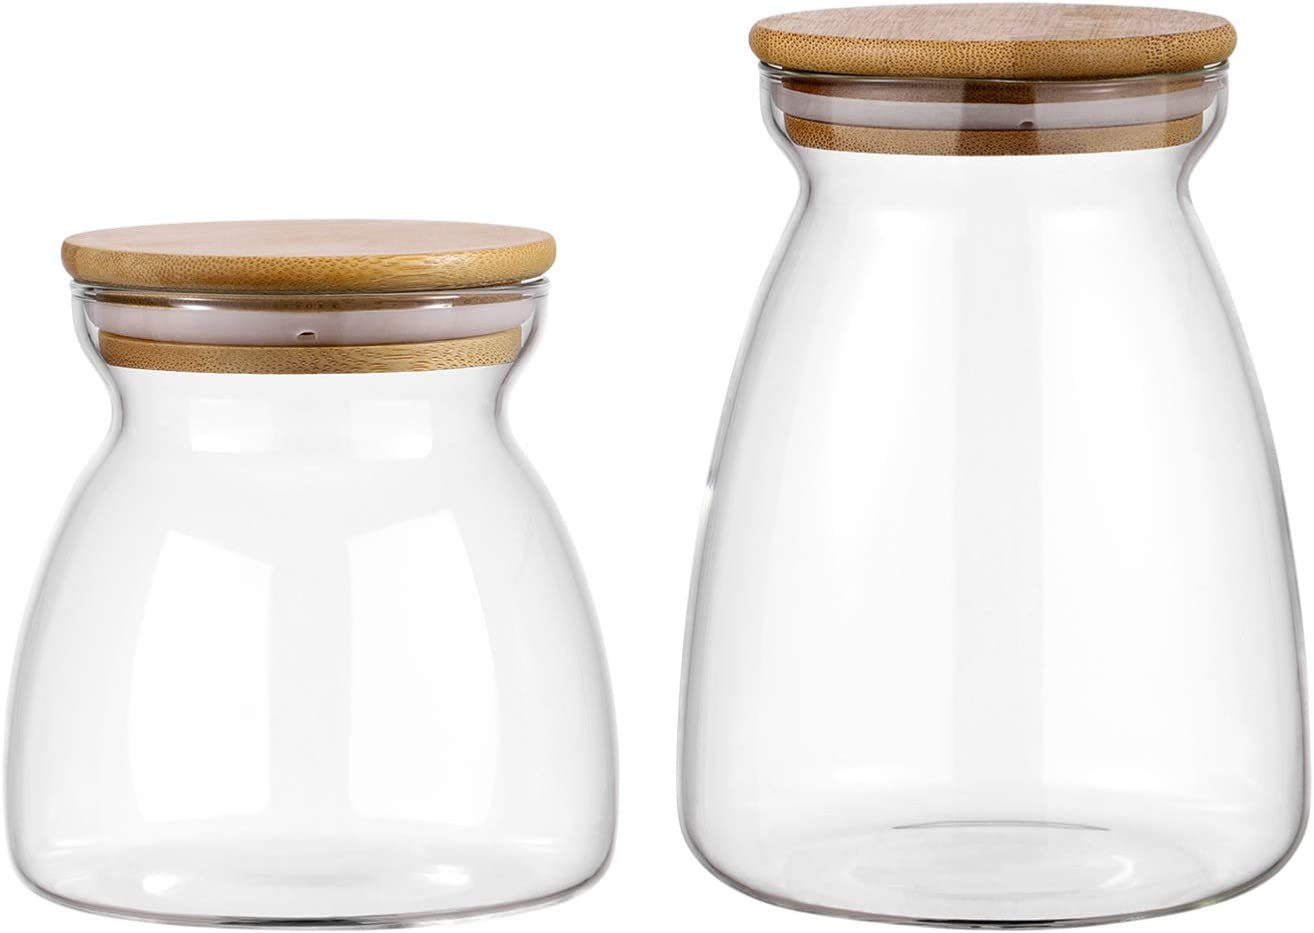 UPKOCH 2pcs Glass Food Storage jar Transparent Airtight Sealed Food Can Canister Bottle with Cork for Spices Sugar Salt Tea Coffee Bean (700ml 1100ml)